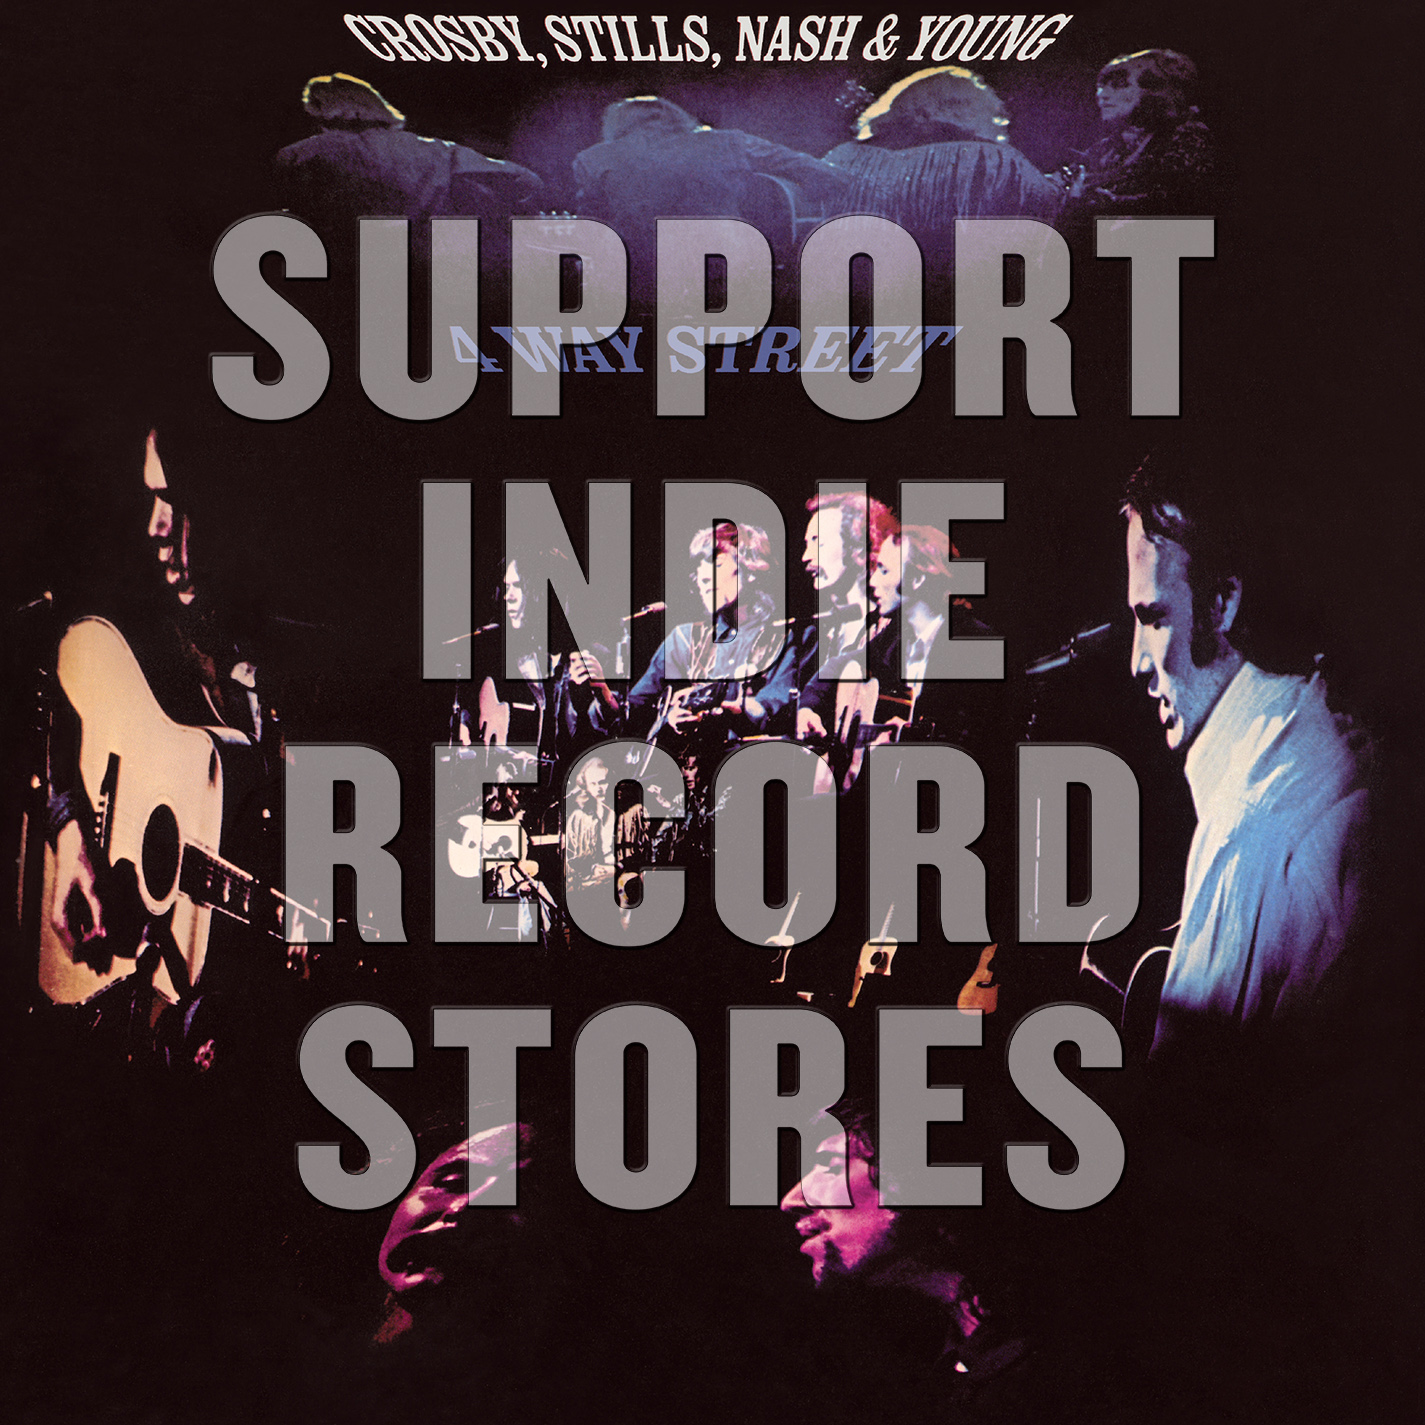 Crosby, Stills, Nash & Young - 4 Way Street (Expanded Edition) [RSD 2019]